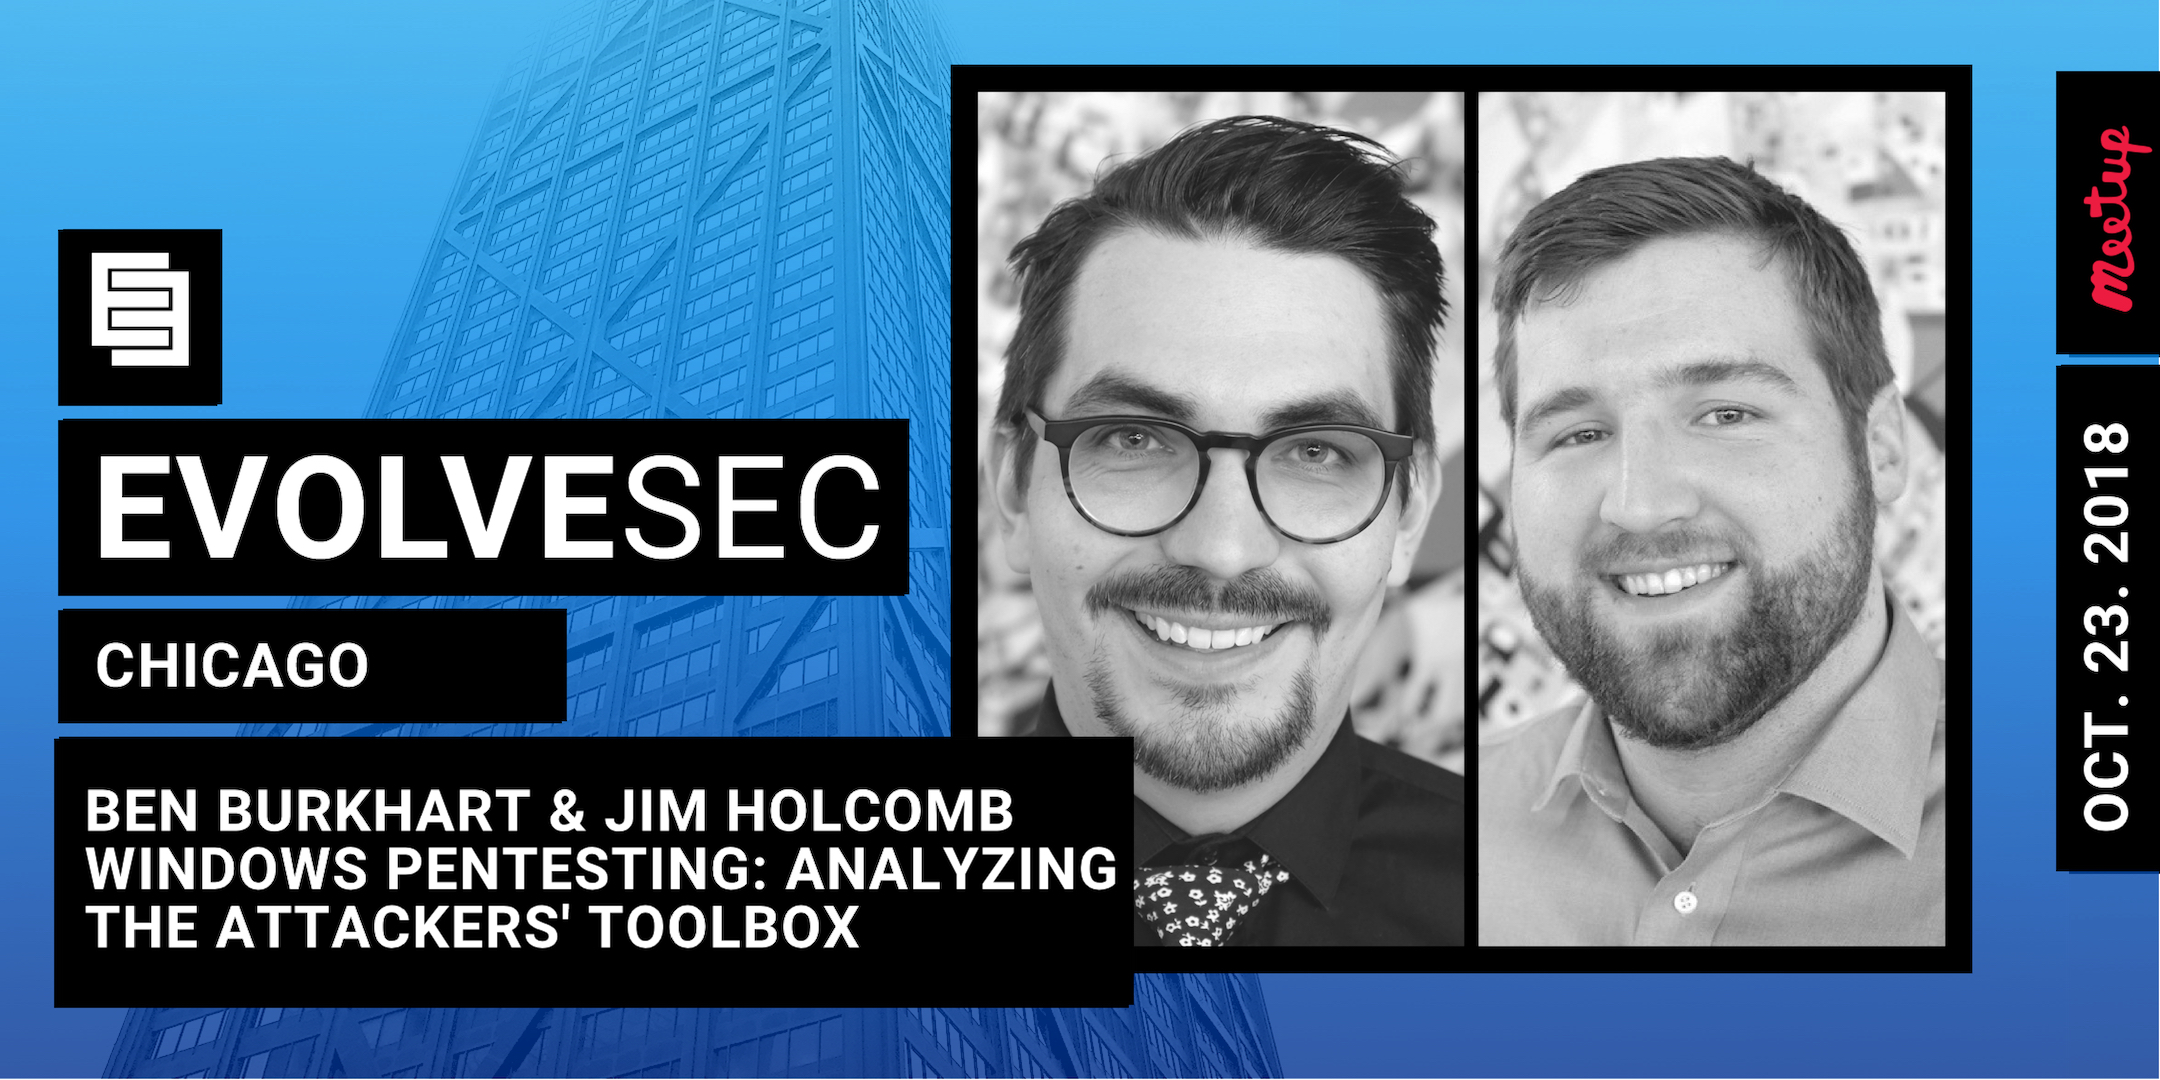 EvolveSec CHI // Windows Pentesting: Analyzing the Attacker's Toolbox